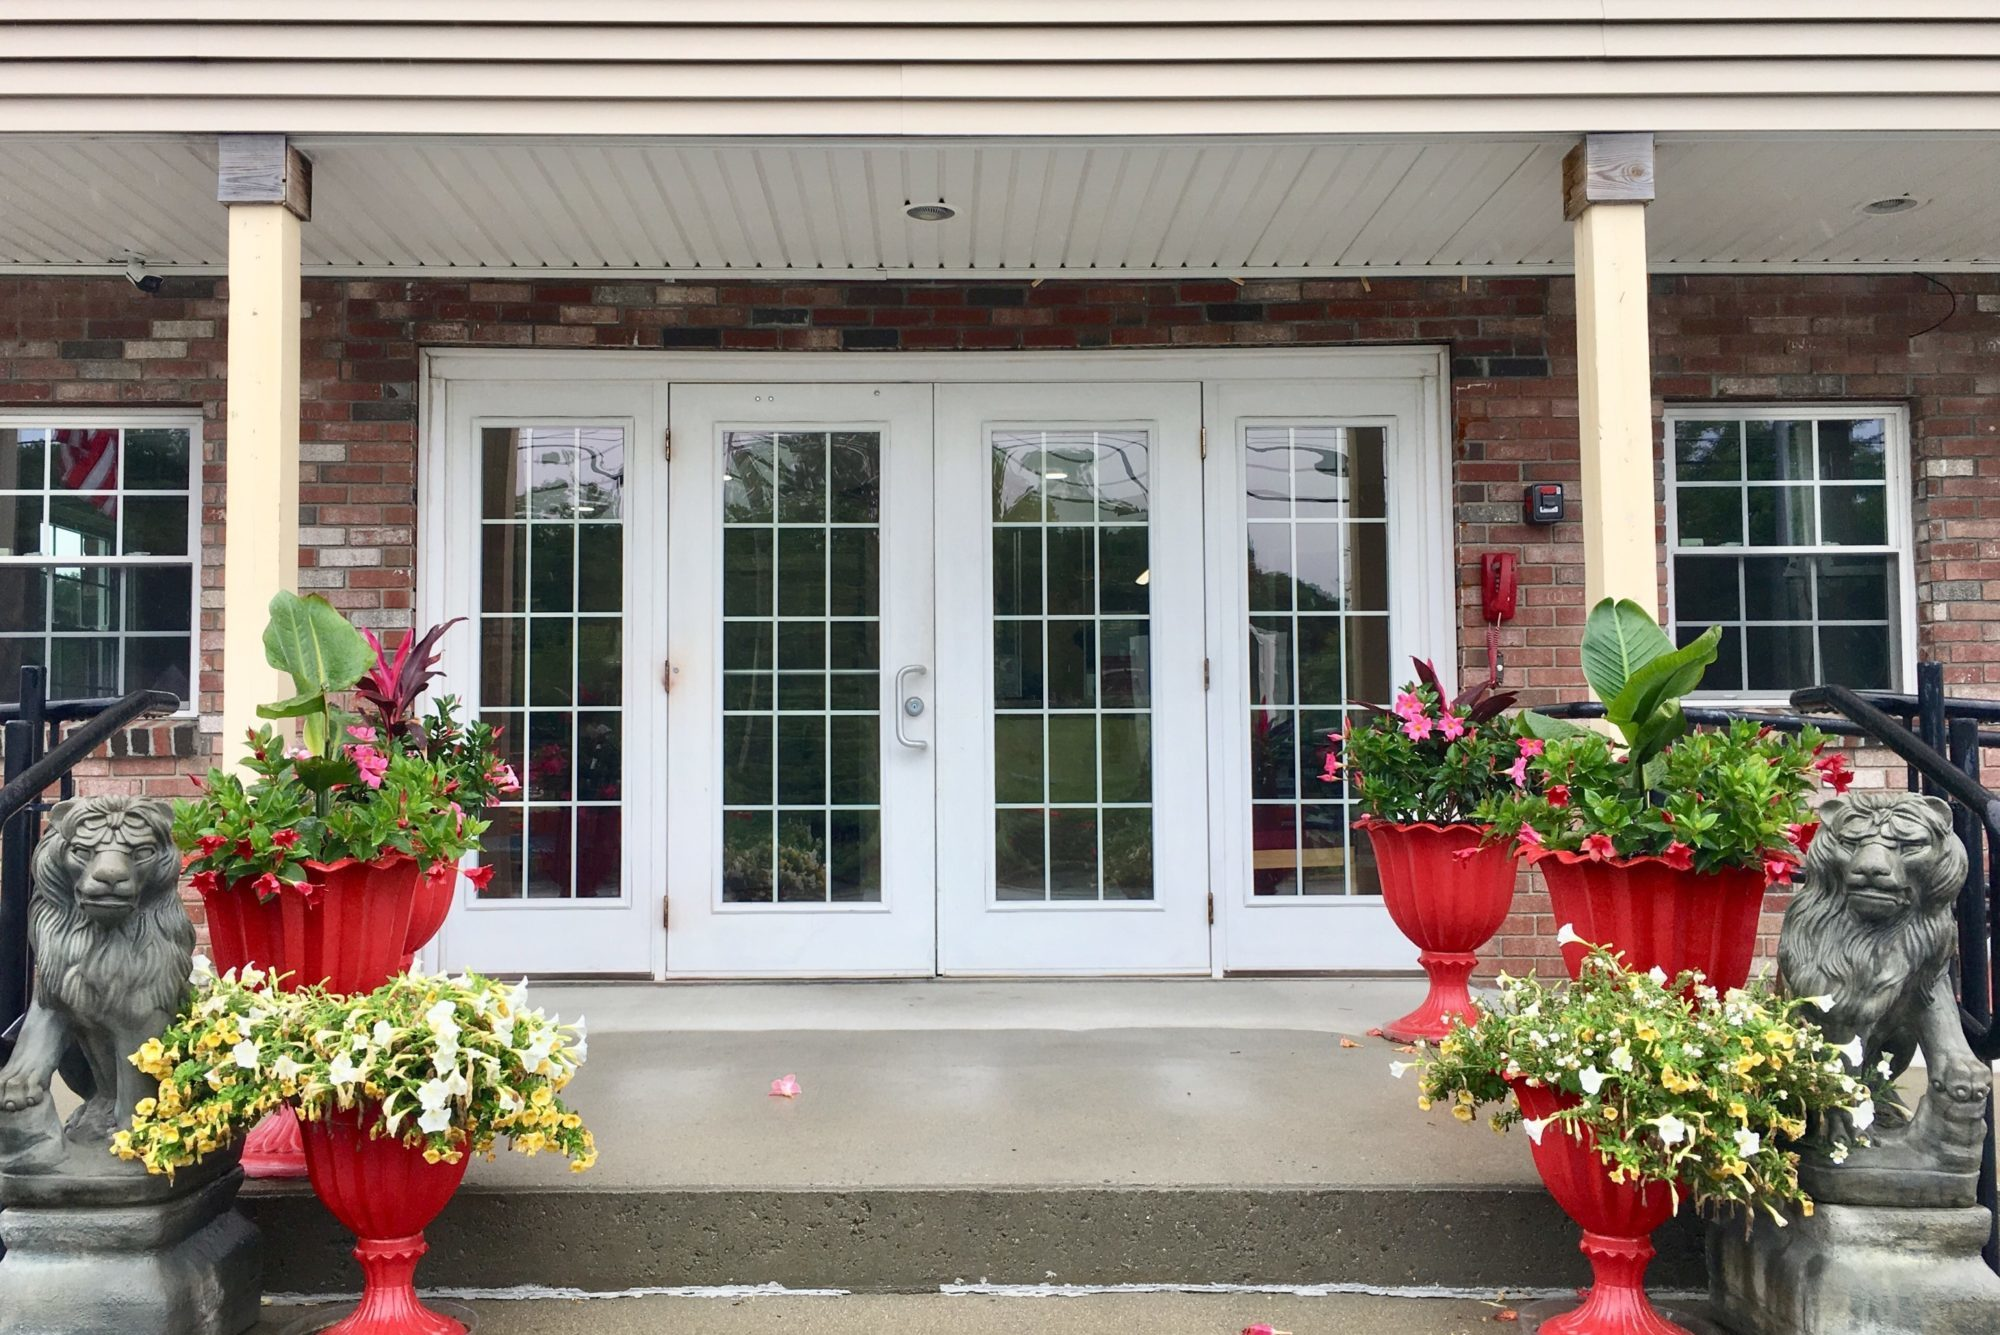 Double doors, planters with flowers and shrubs, lion statues, porst area